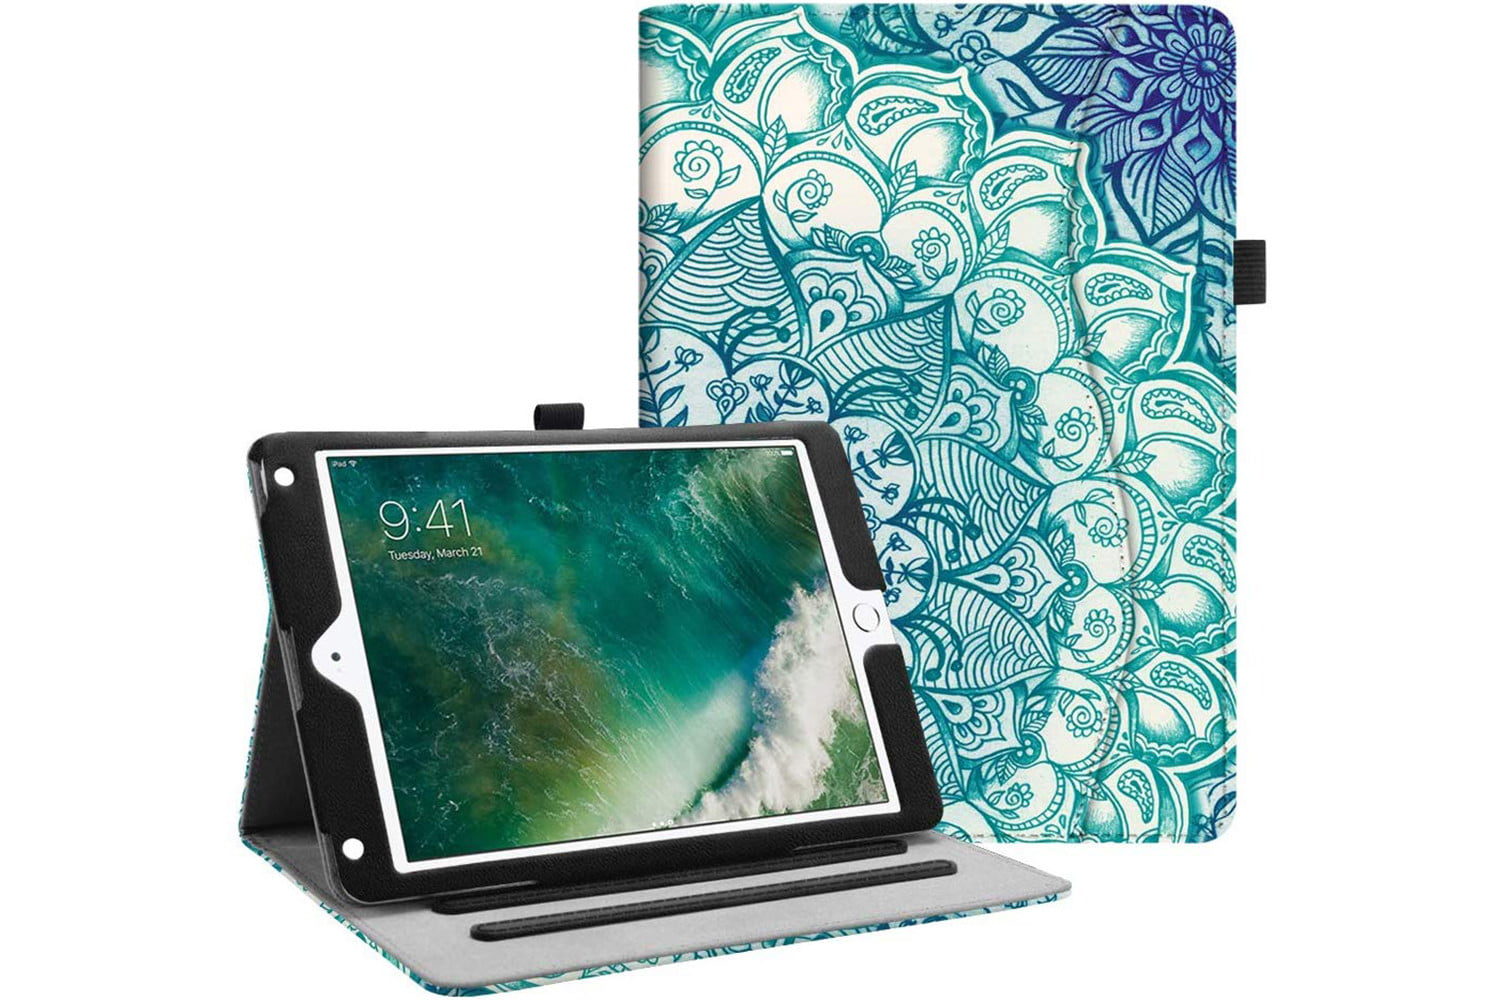 Best iPad Pro case 2020: Protect your